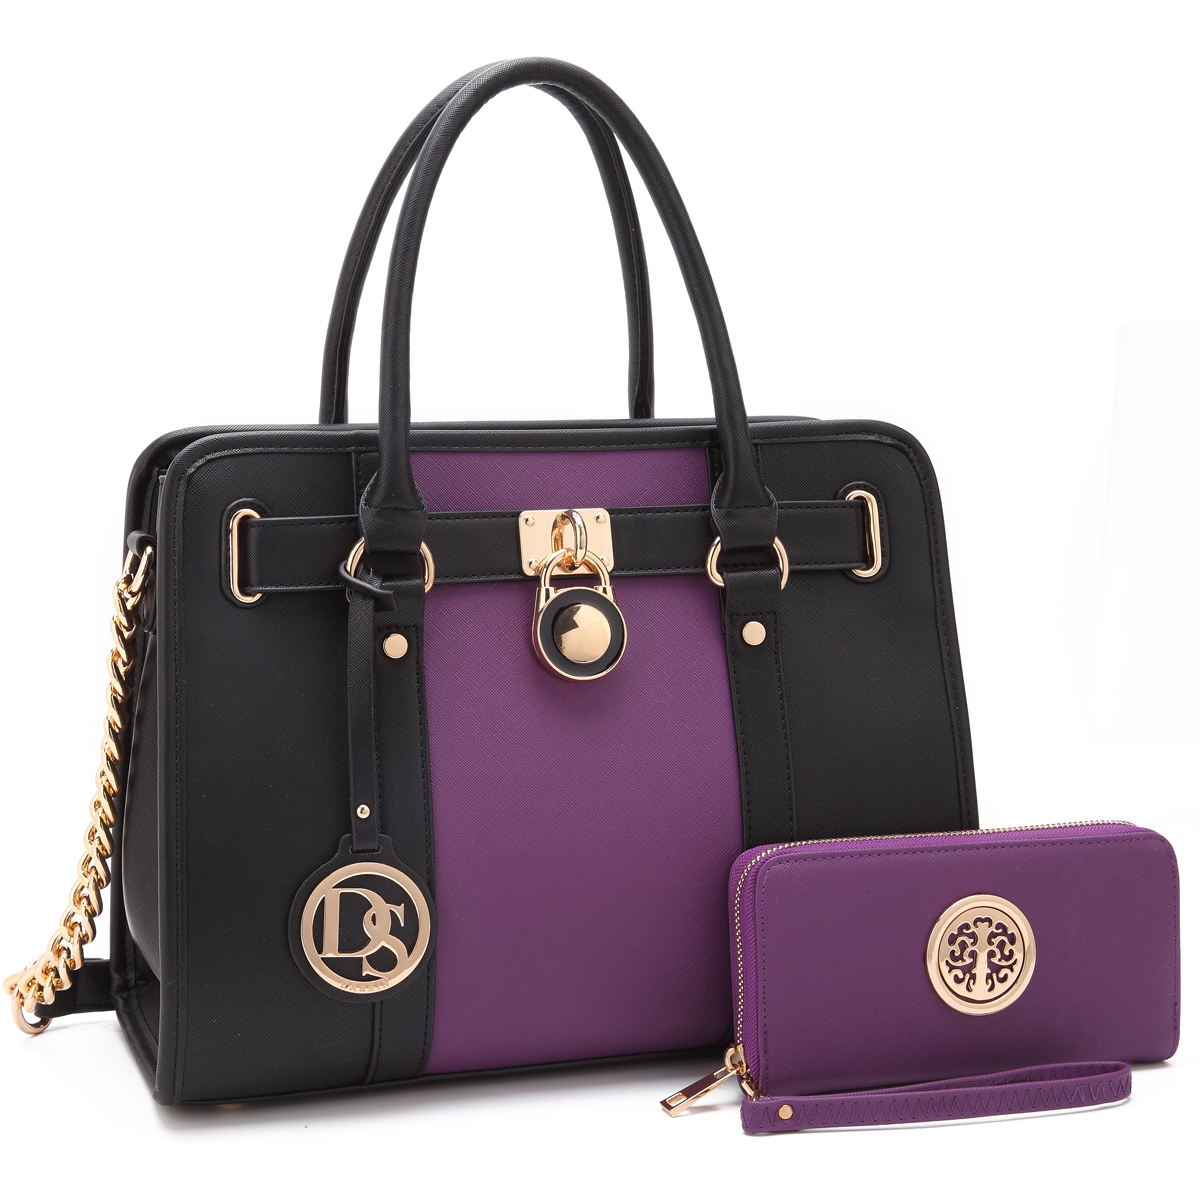 Dasein Large Two Tone Faux Leather Satchel with Gold Chain Strap and with Matching Wallet